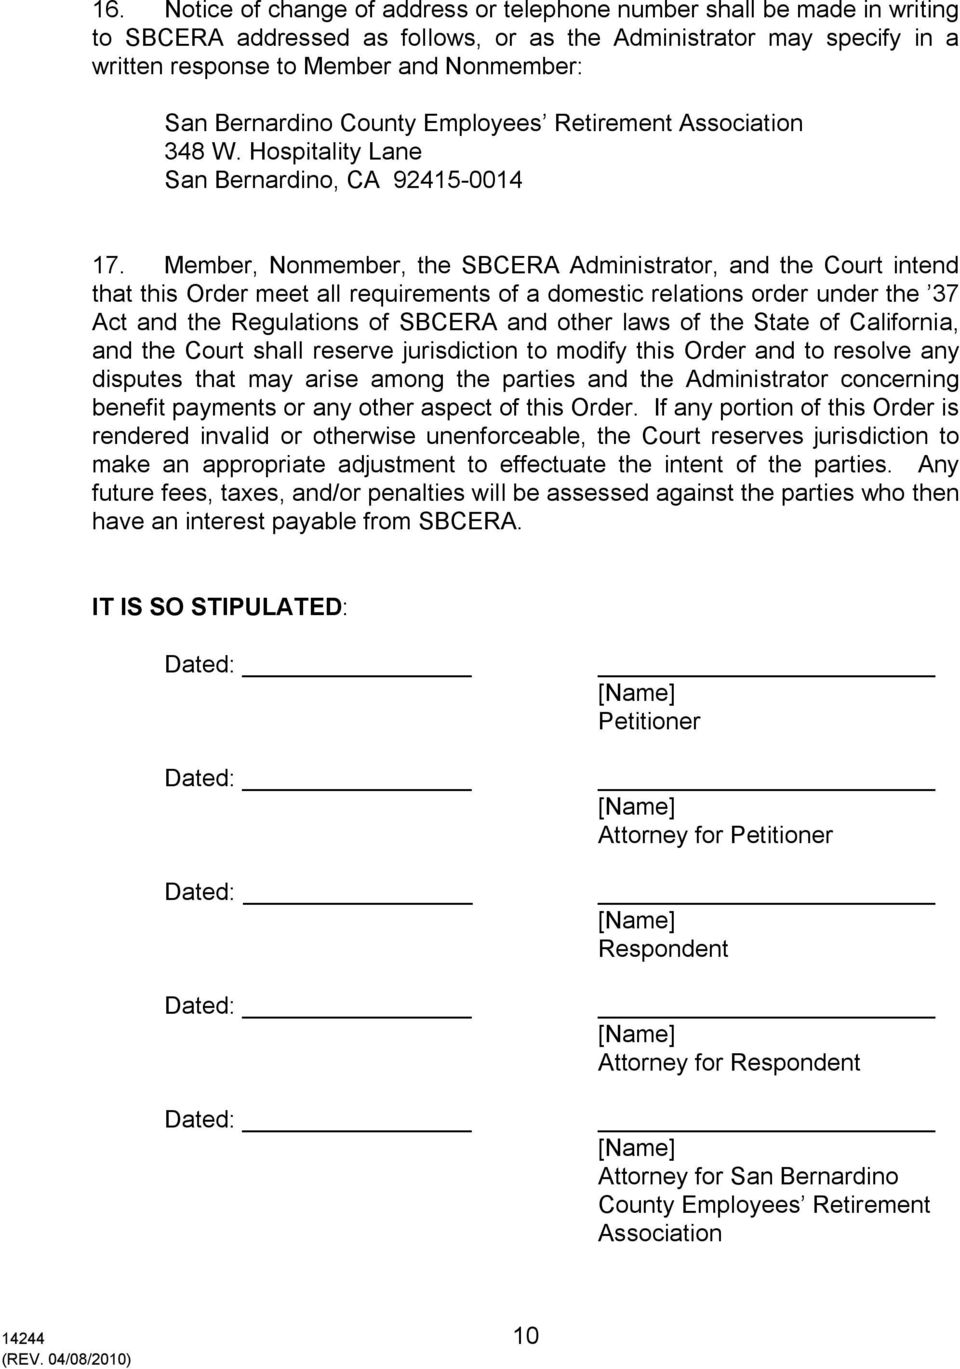 Member, Nonmember, the SBCERA Administrator, and the Court intend that this Order meet all requirements of a domestic relations order under the 37 Act and the Regulations of SBCERA and other laws of